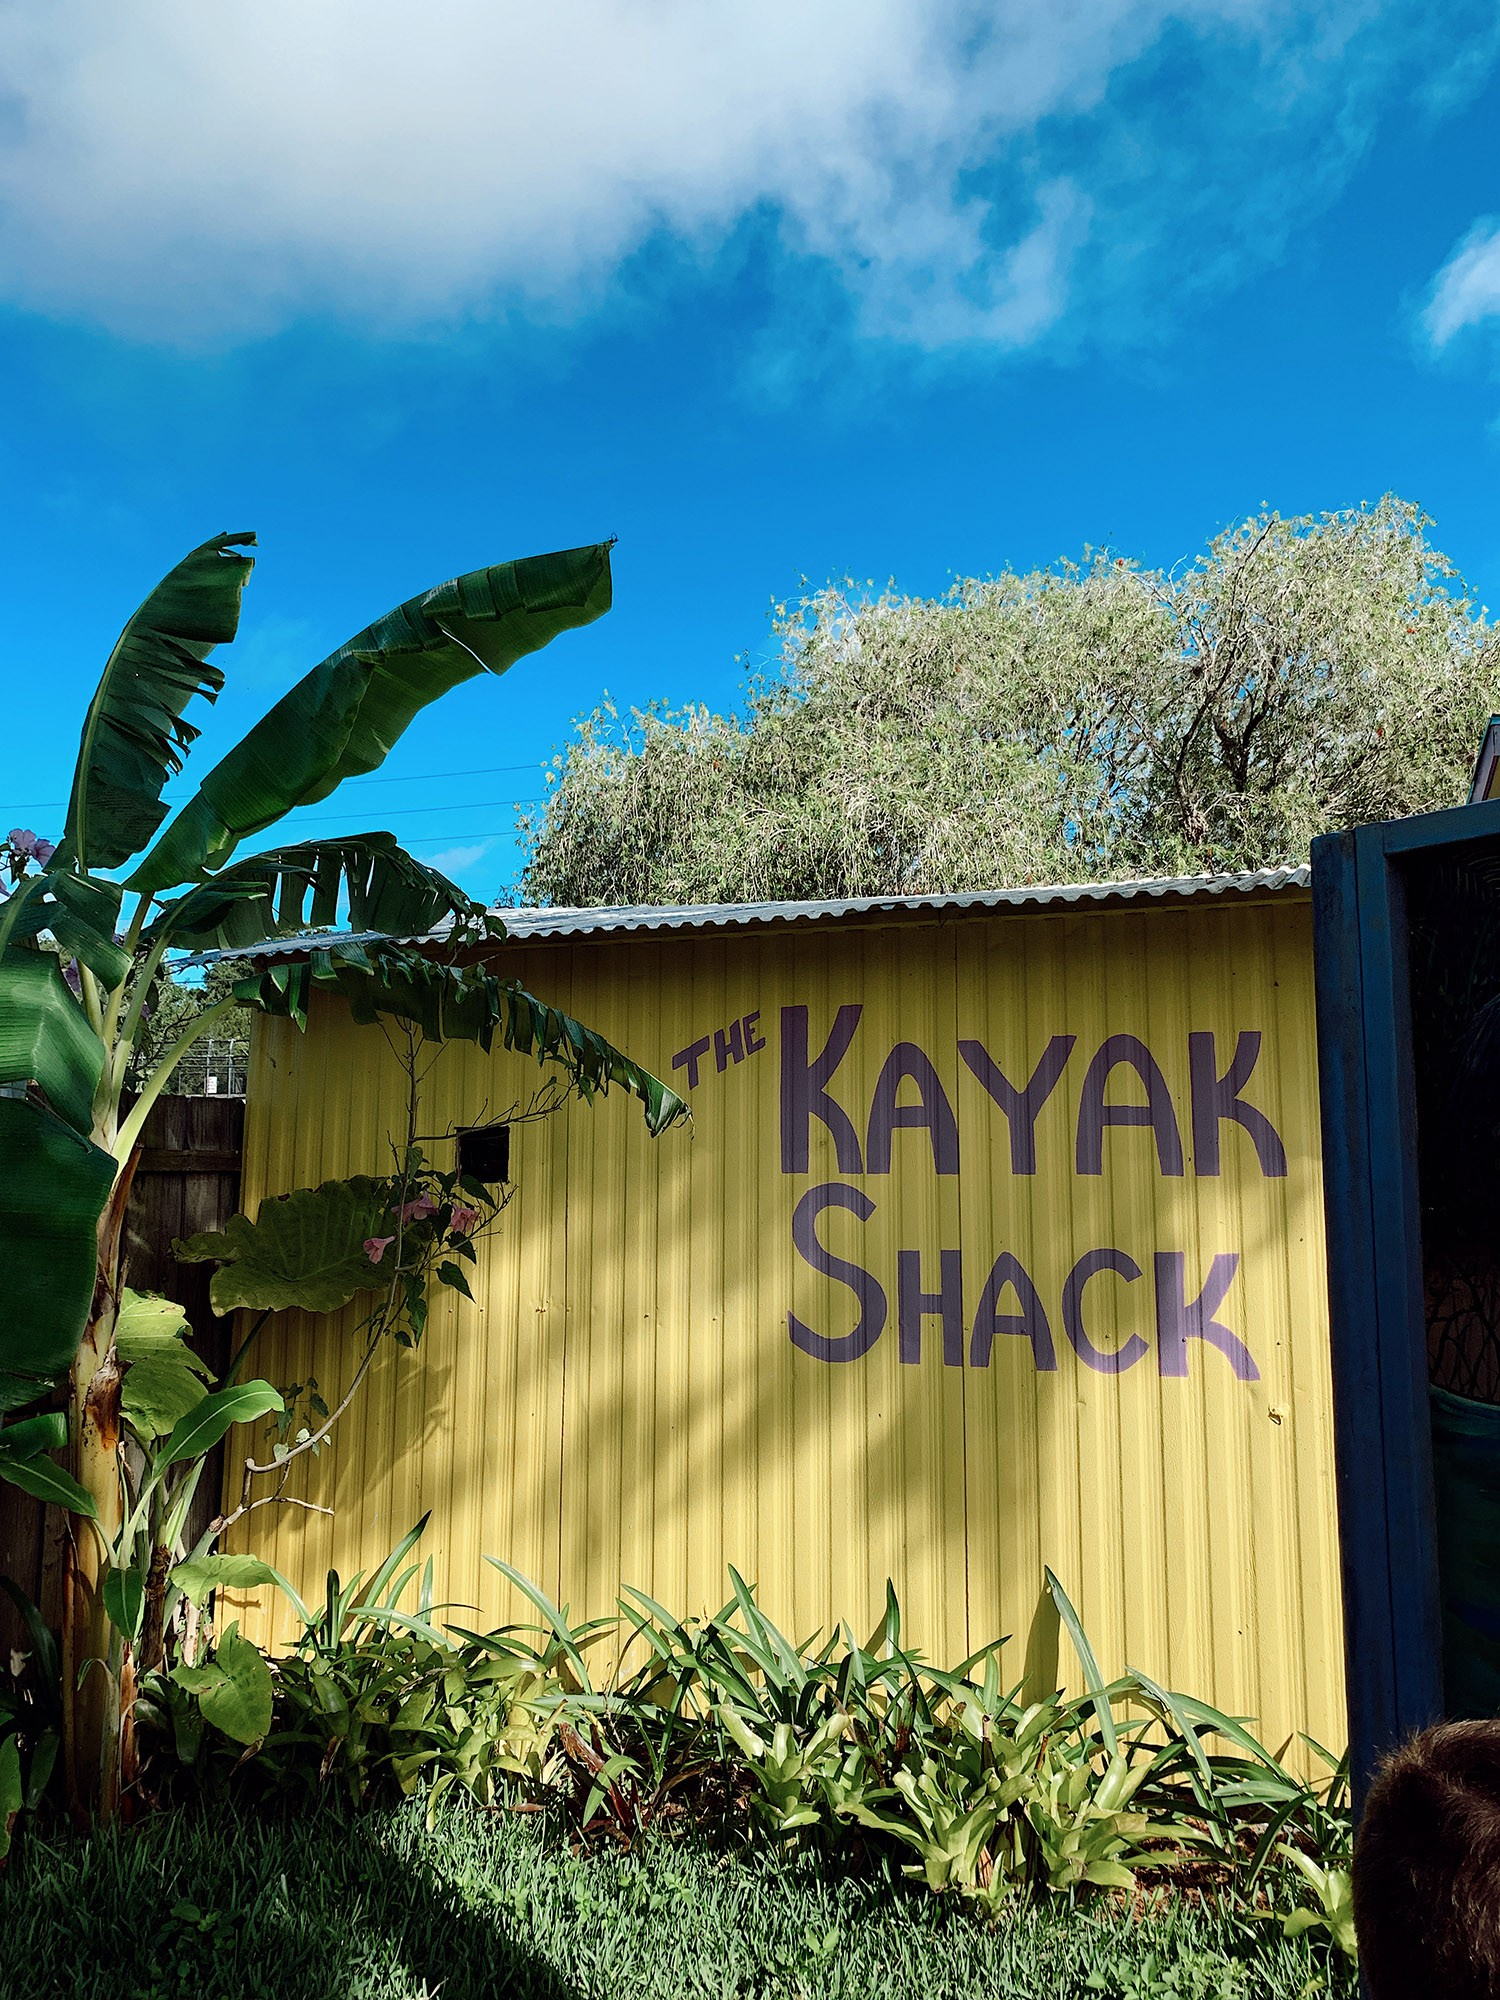 Tips for an Amazing Weeki Wachee Kayaking Florida Staycation. Visit Florida Travel ideas from top lifestyle blogger Tabitha Blue of Fresh Mommy Blog. | Weeki Wachee Kayaking by popular Florida blog, Fresh Mommy Blog: image of The Kayak Shack.